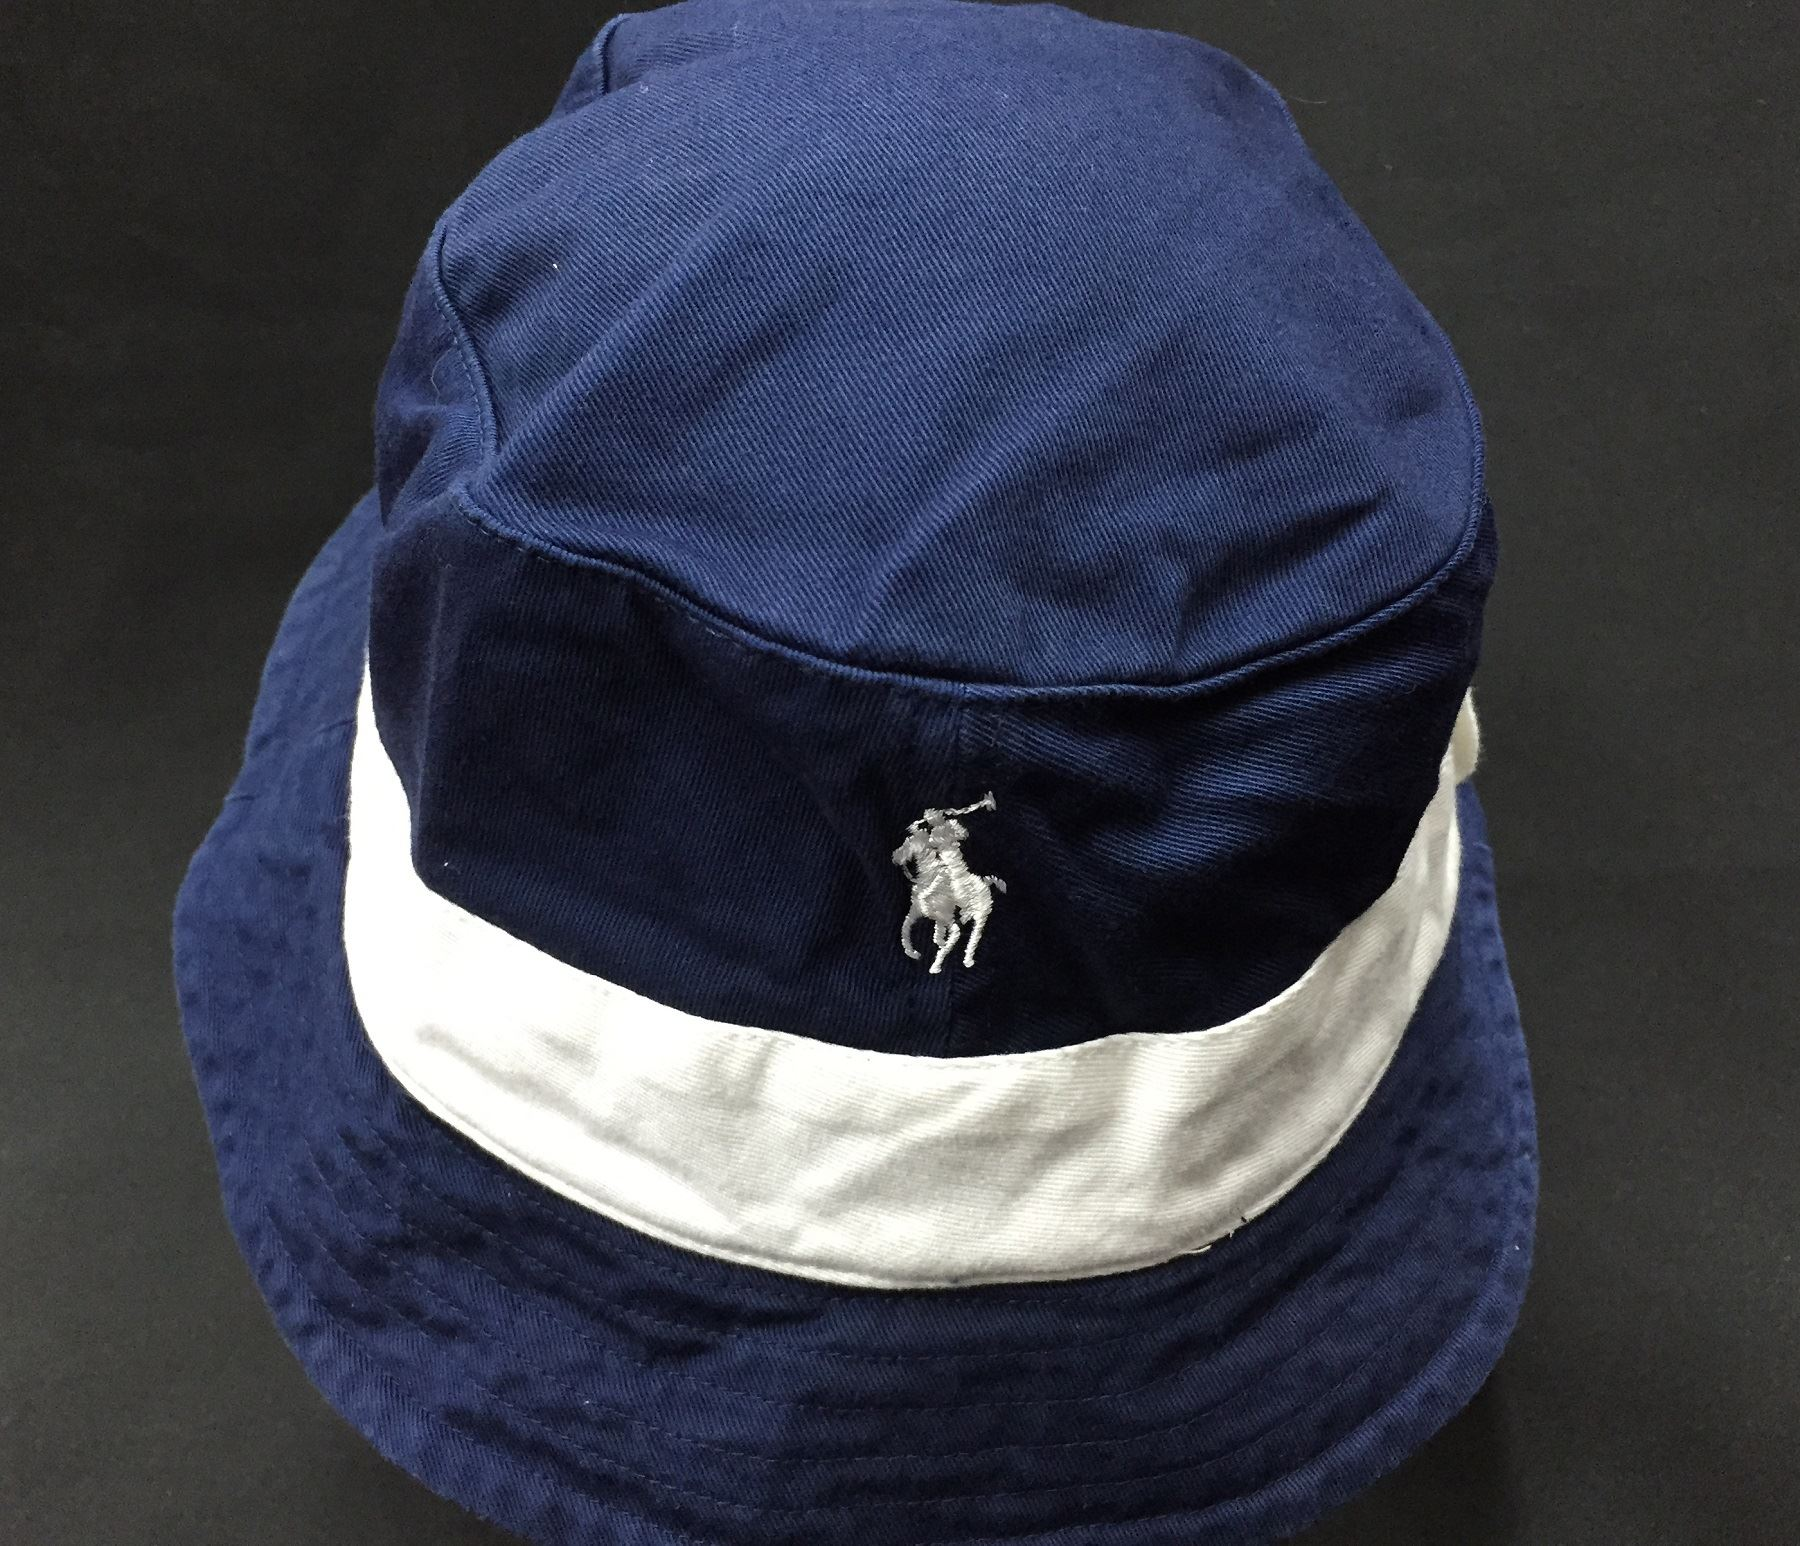 LIMITED EDITION  Polo Ralph Lauren US OPEN Hats   Baseball Caps  8c843f870f1a